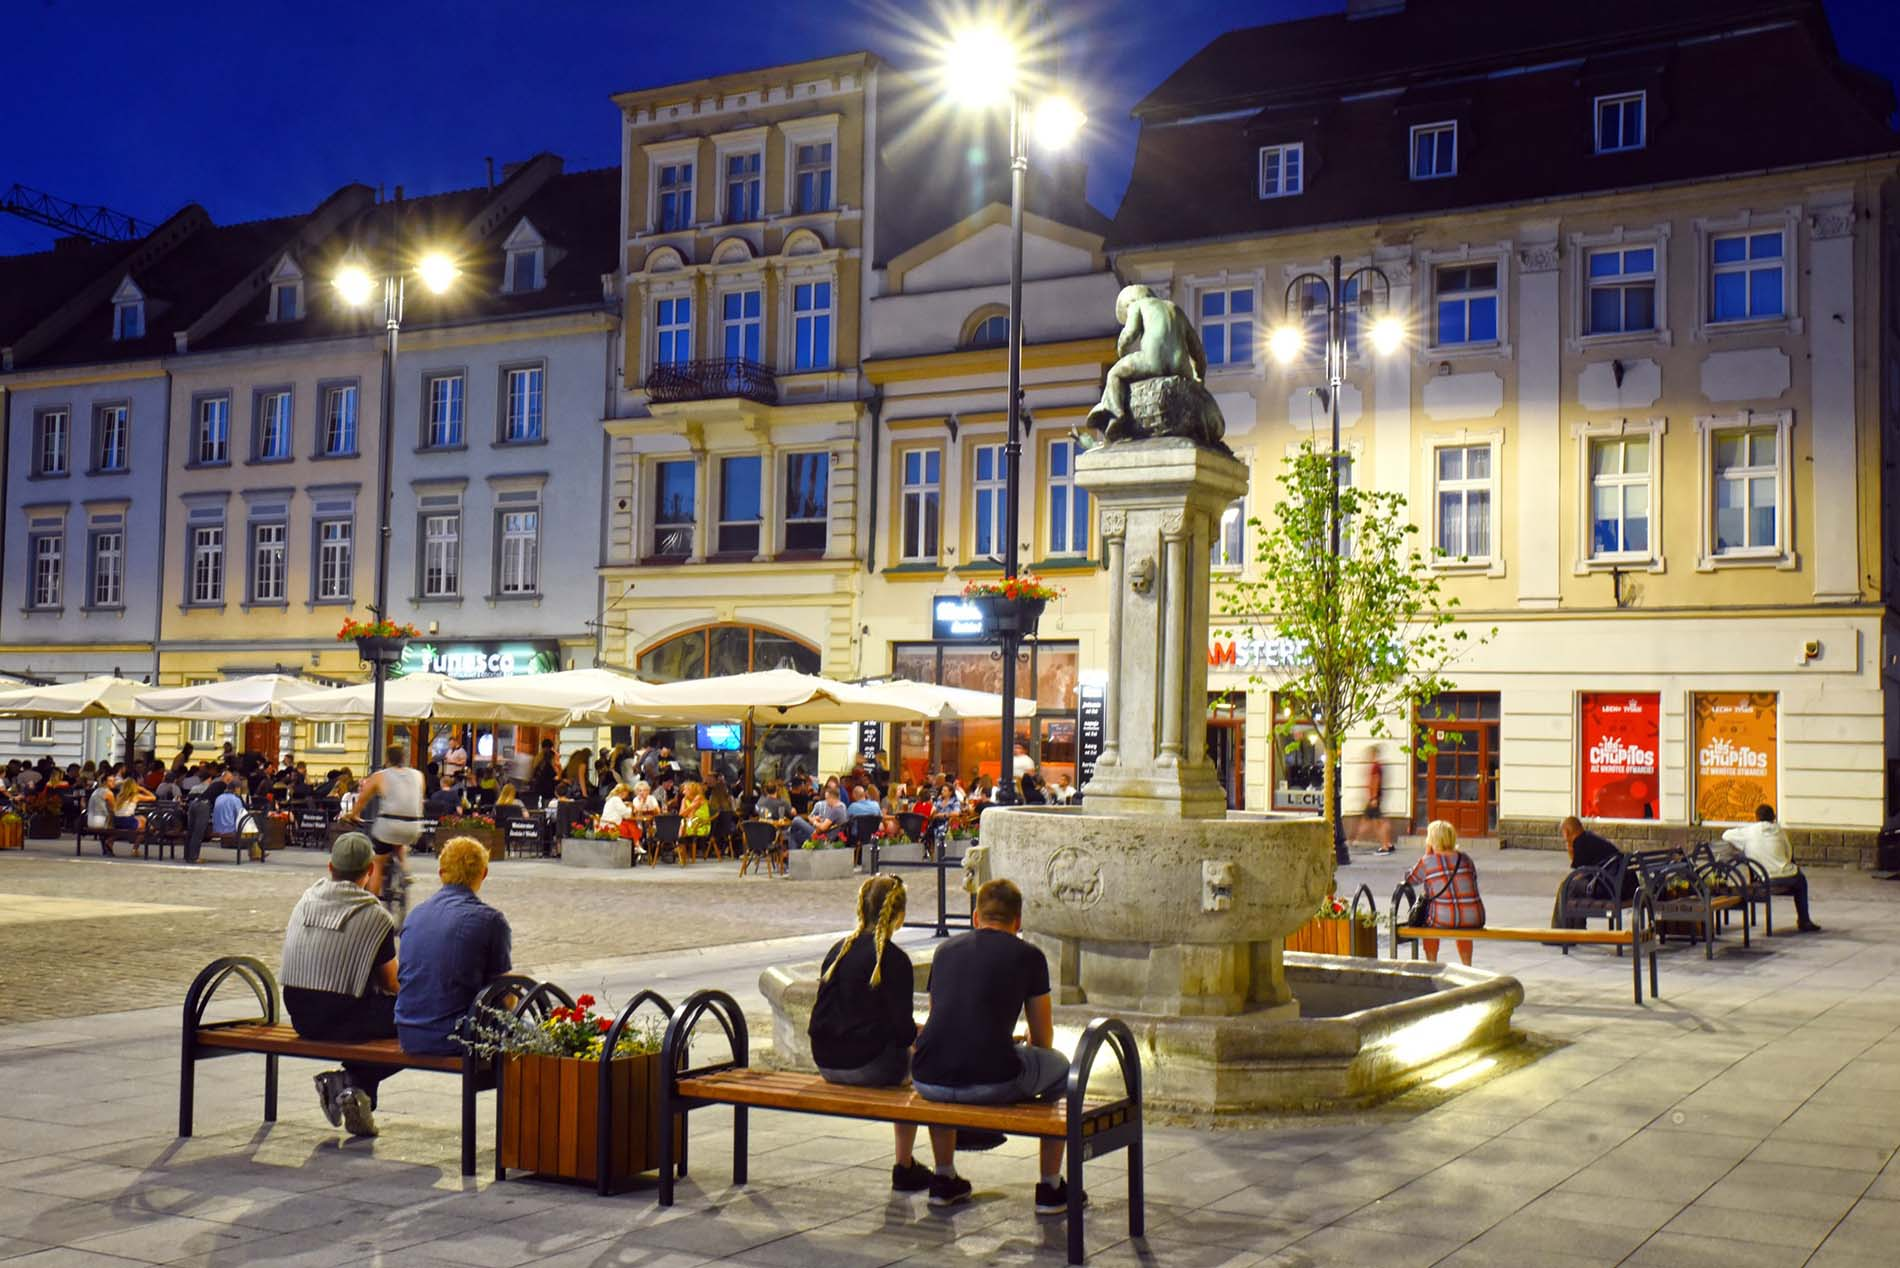 Bydgoszcz | Old market square | Fountain